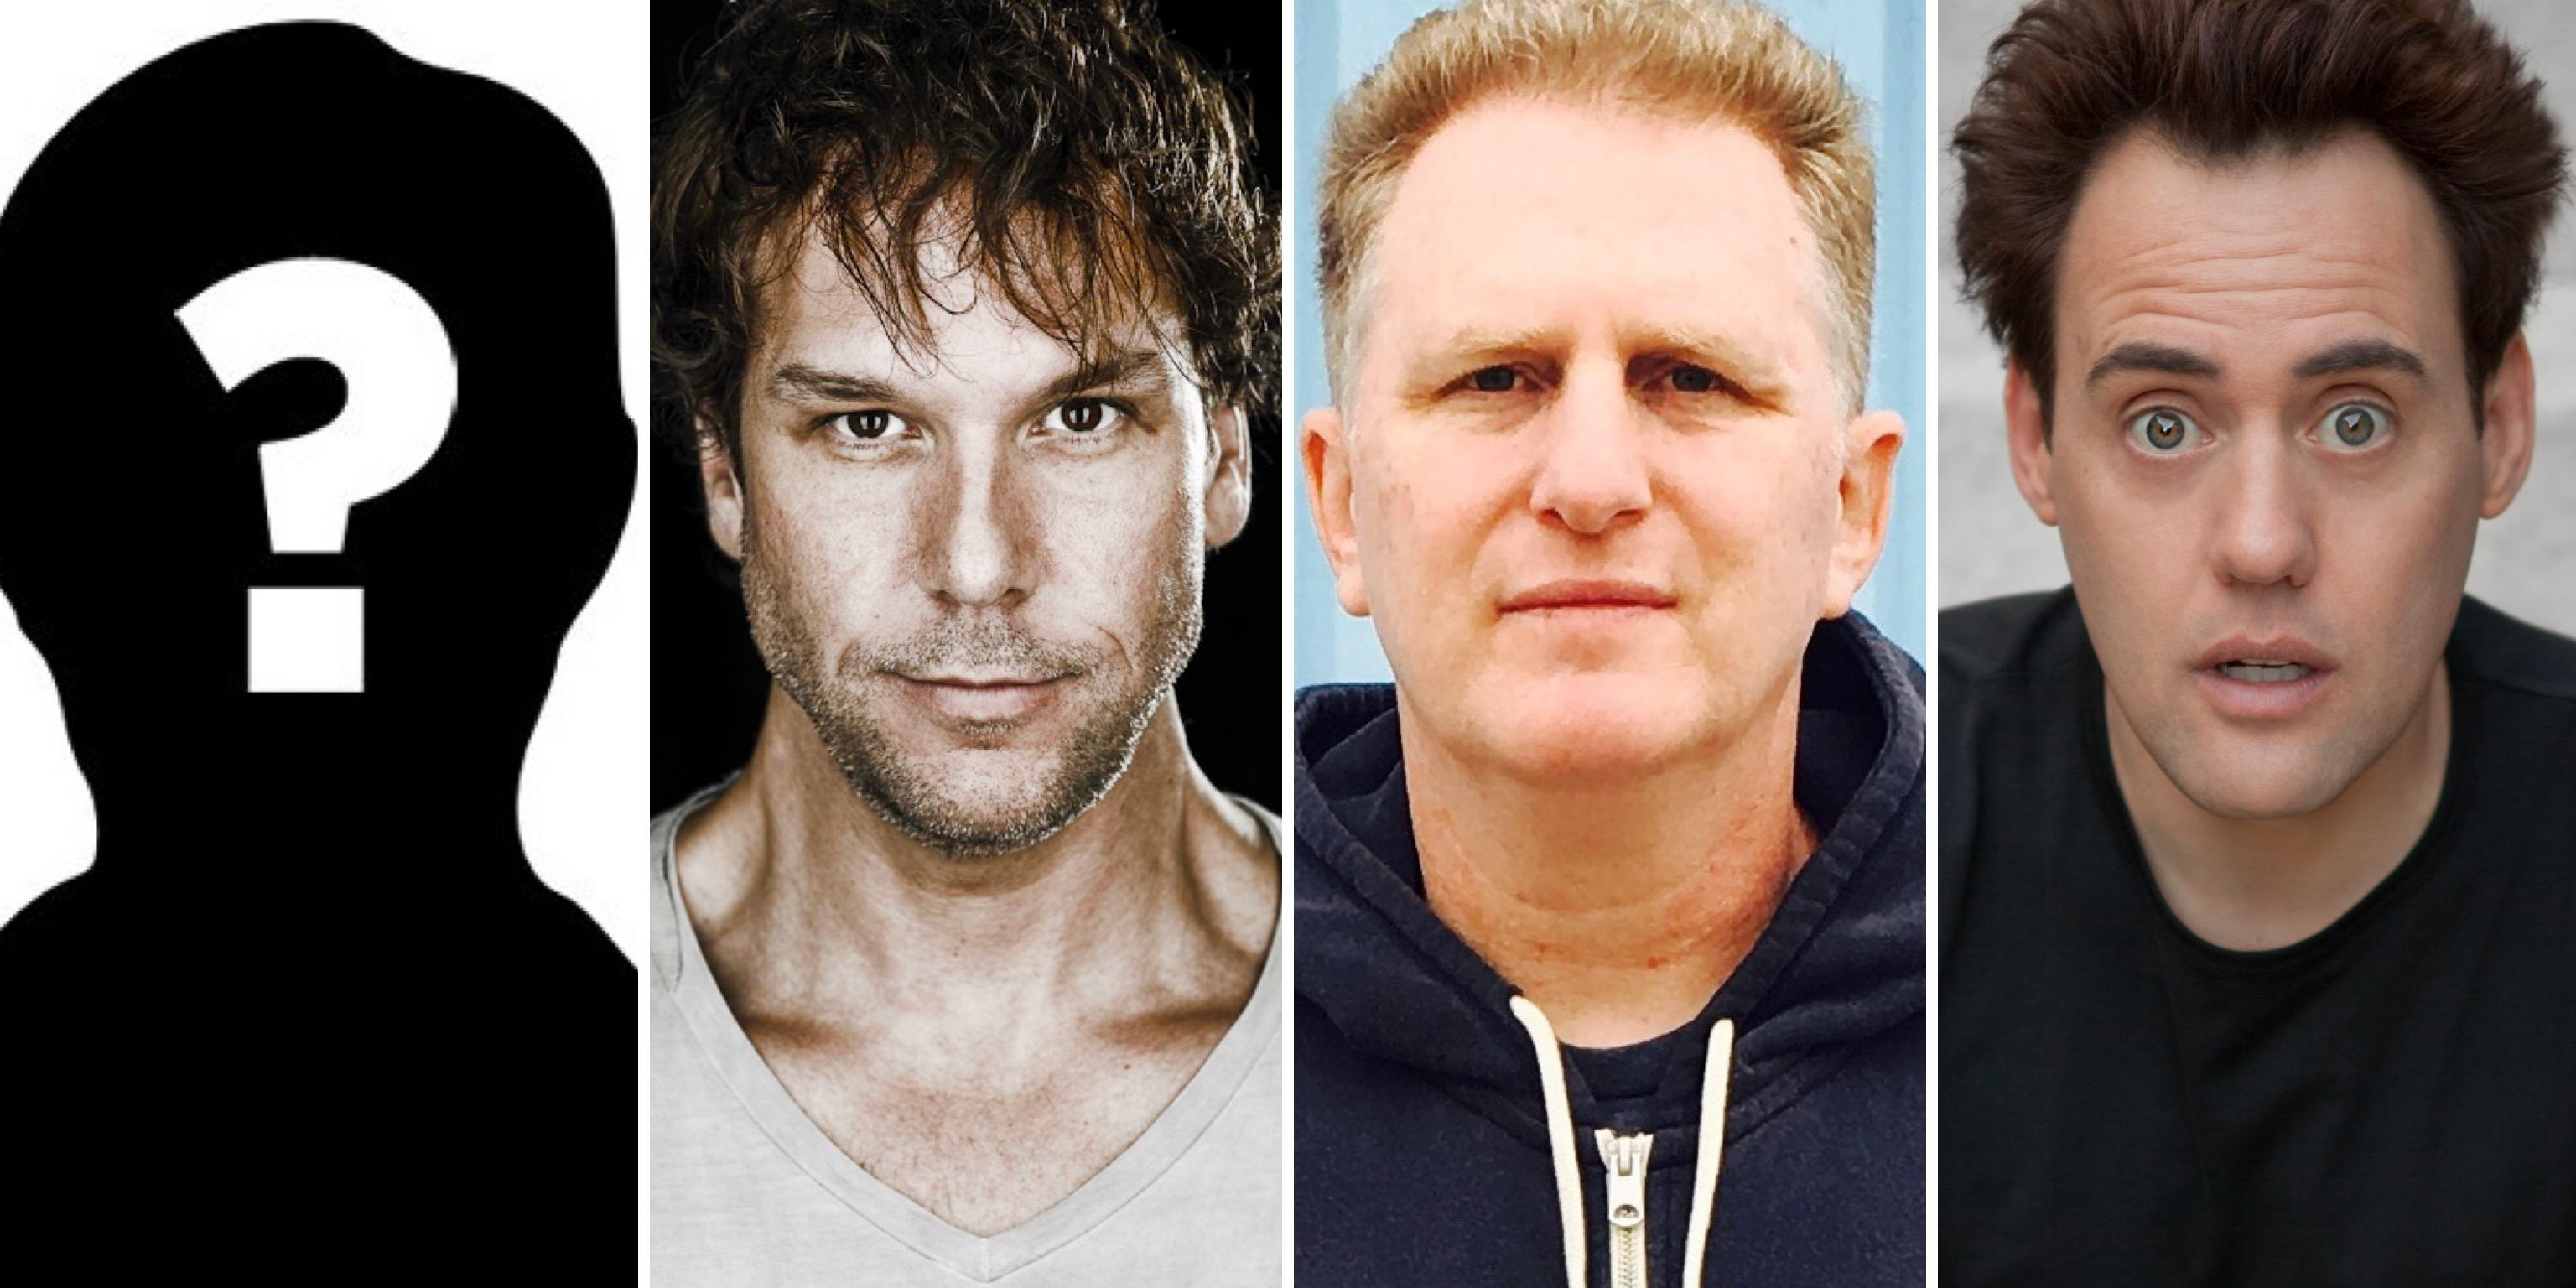 Dane Cook, Michael Rapaport, Orny Adams and a Special Guest